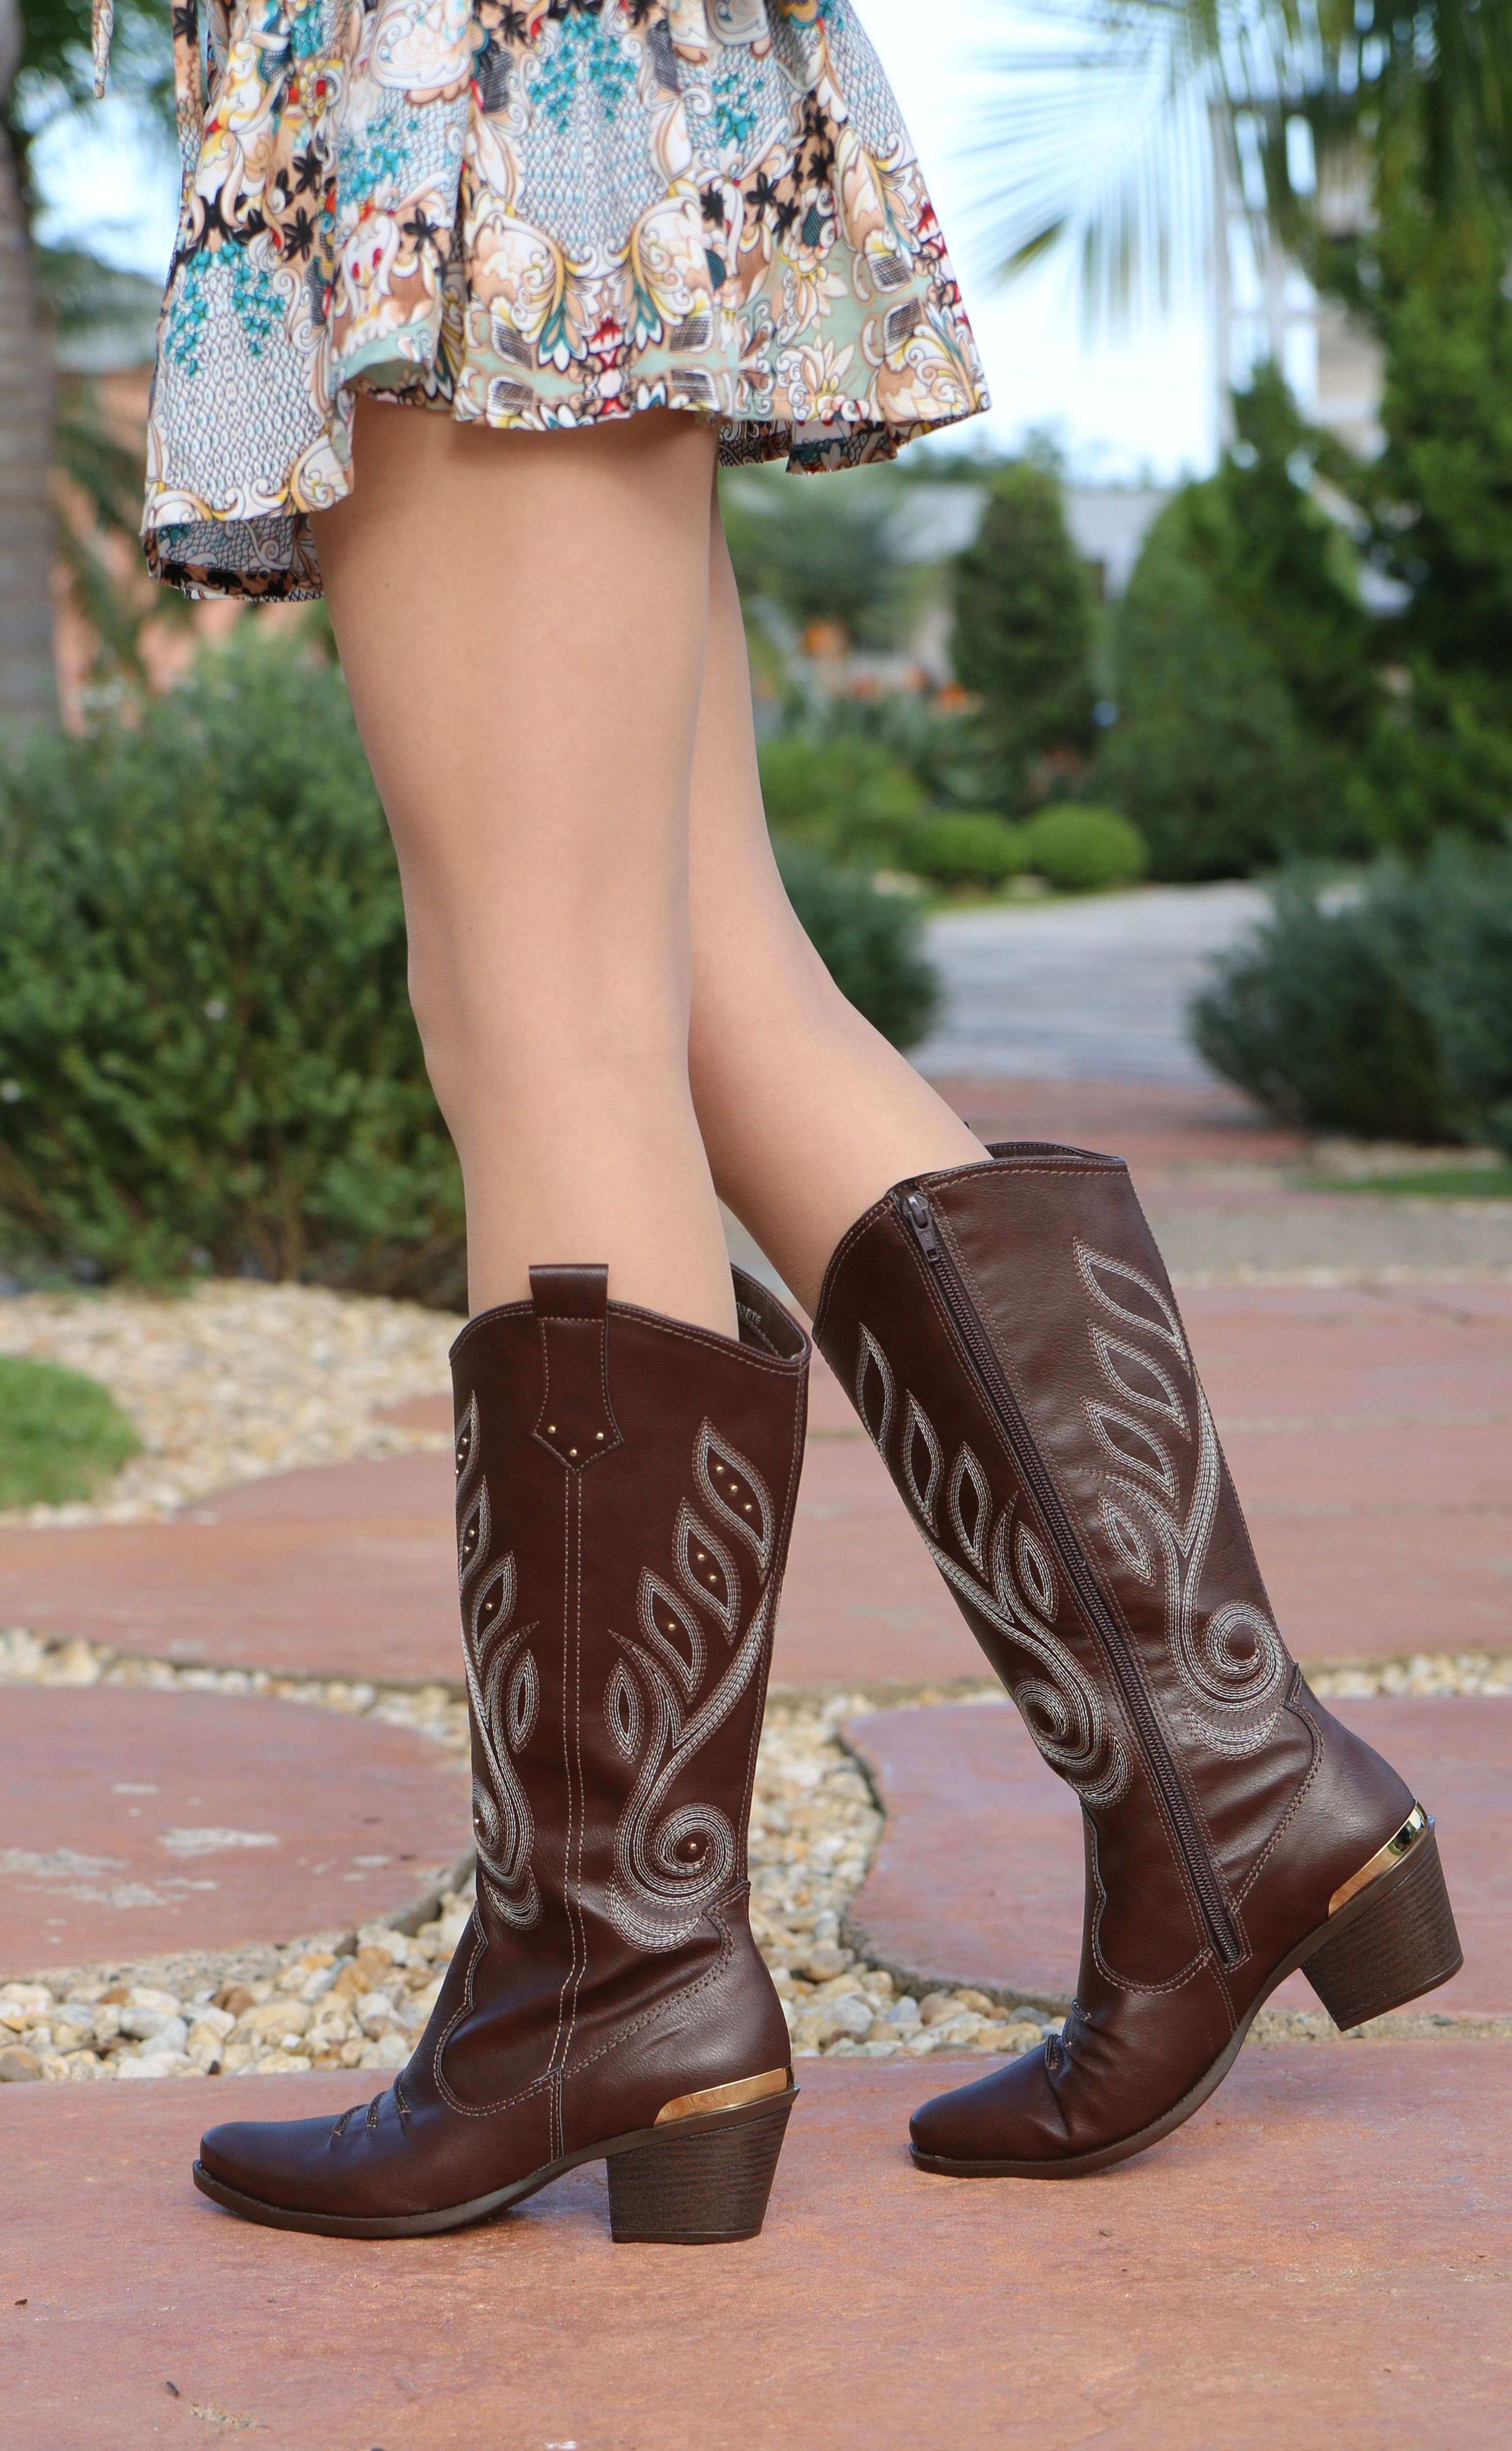 1003e86099b00 country boots - brown shoes - winter - bota - Inverno 2015 - Ref. 15-6107